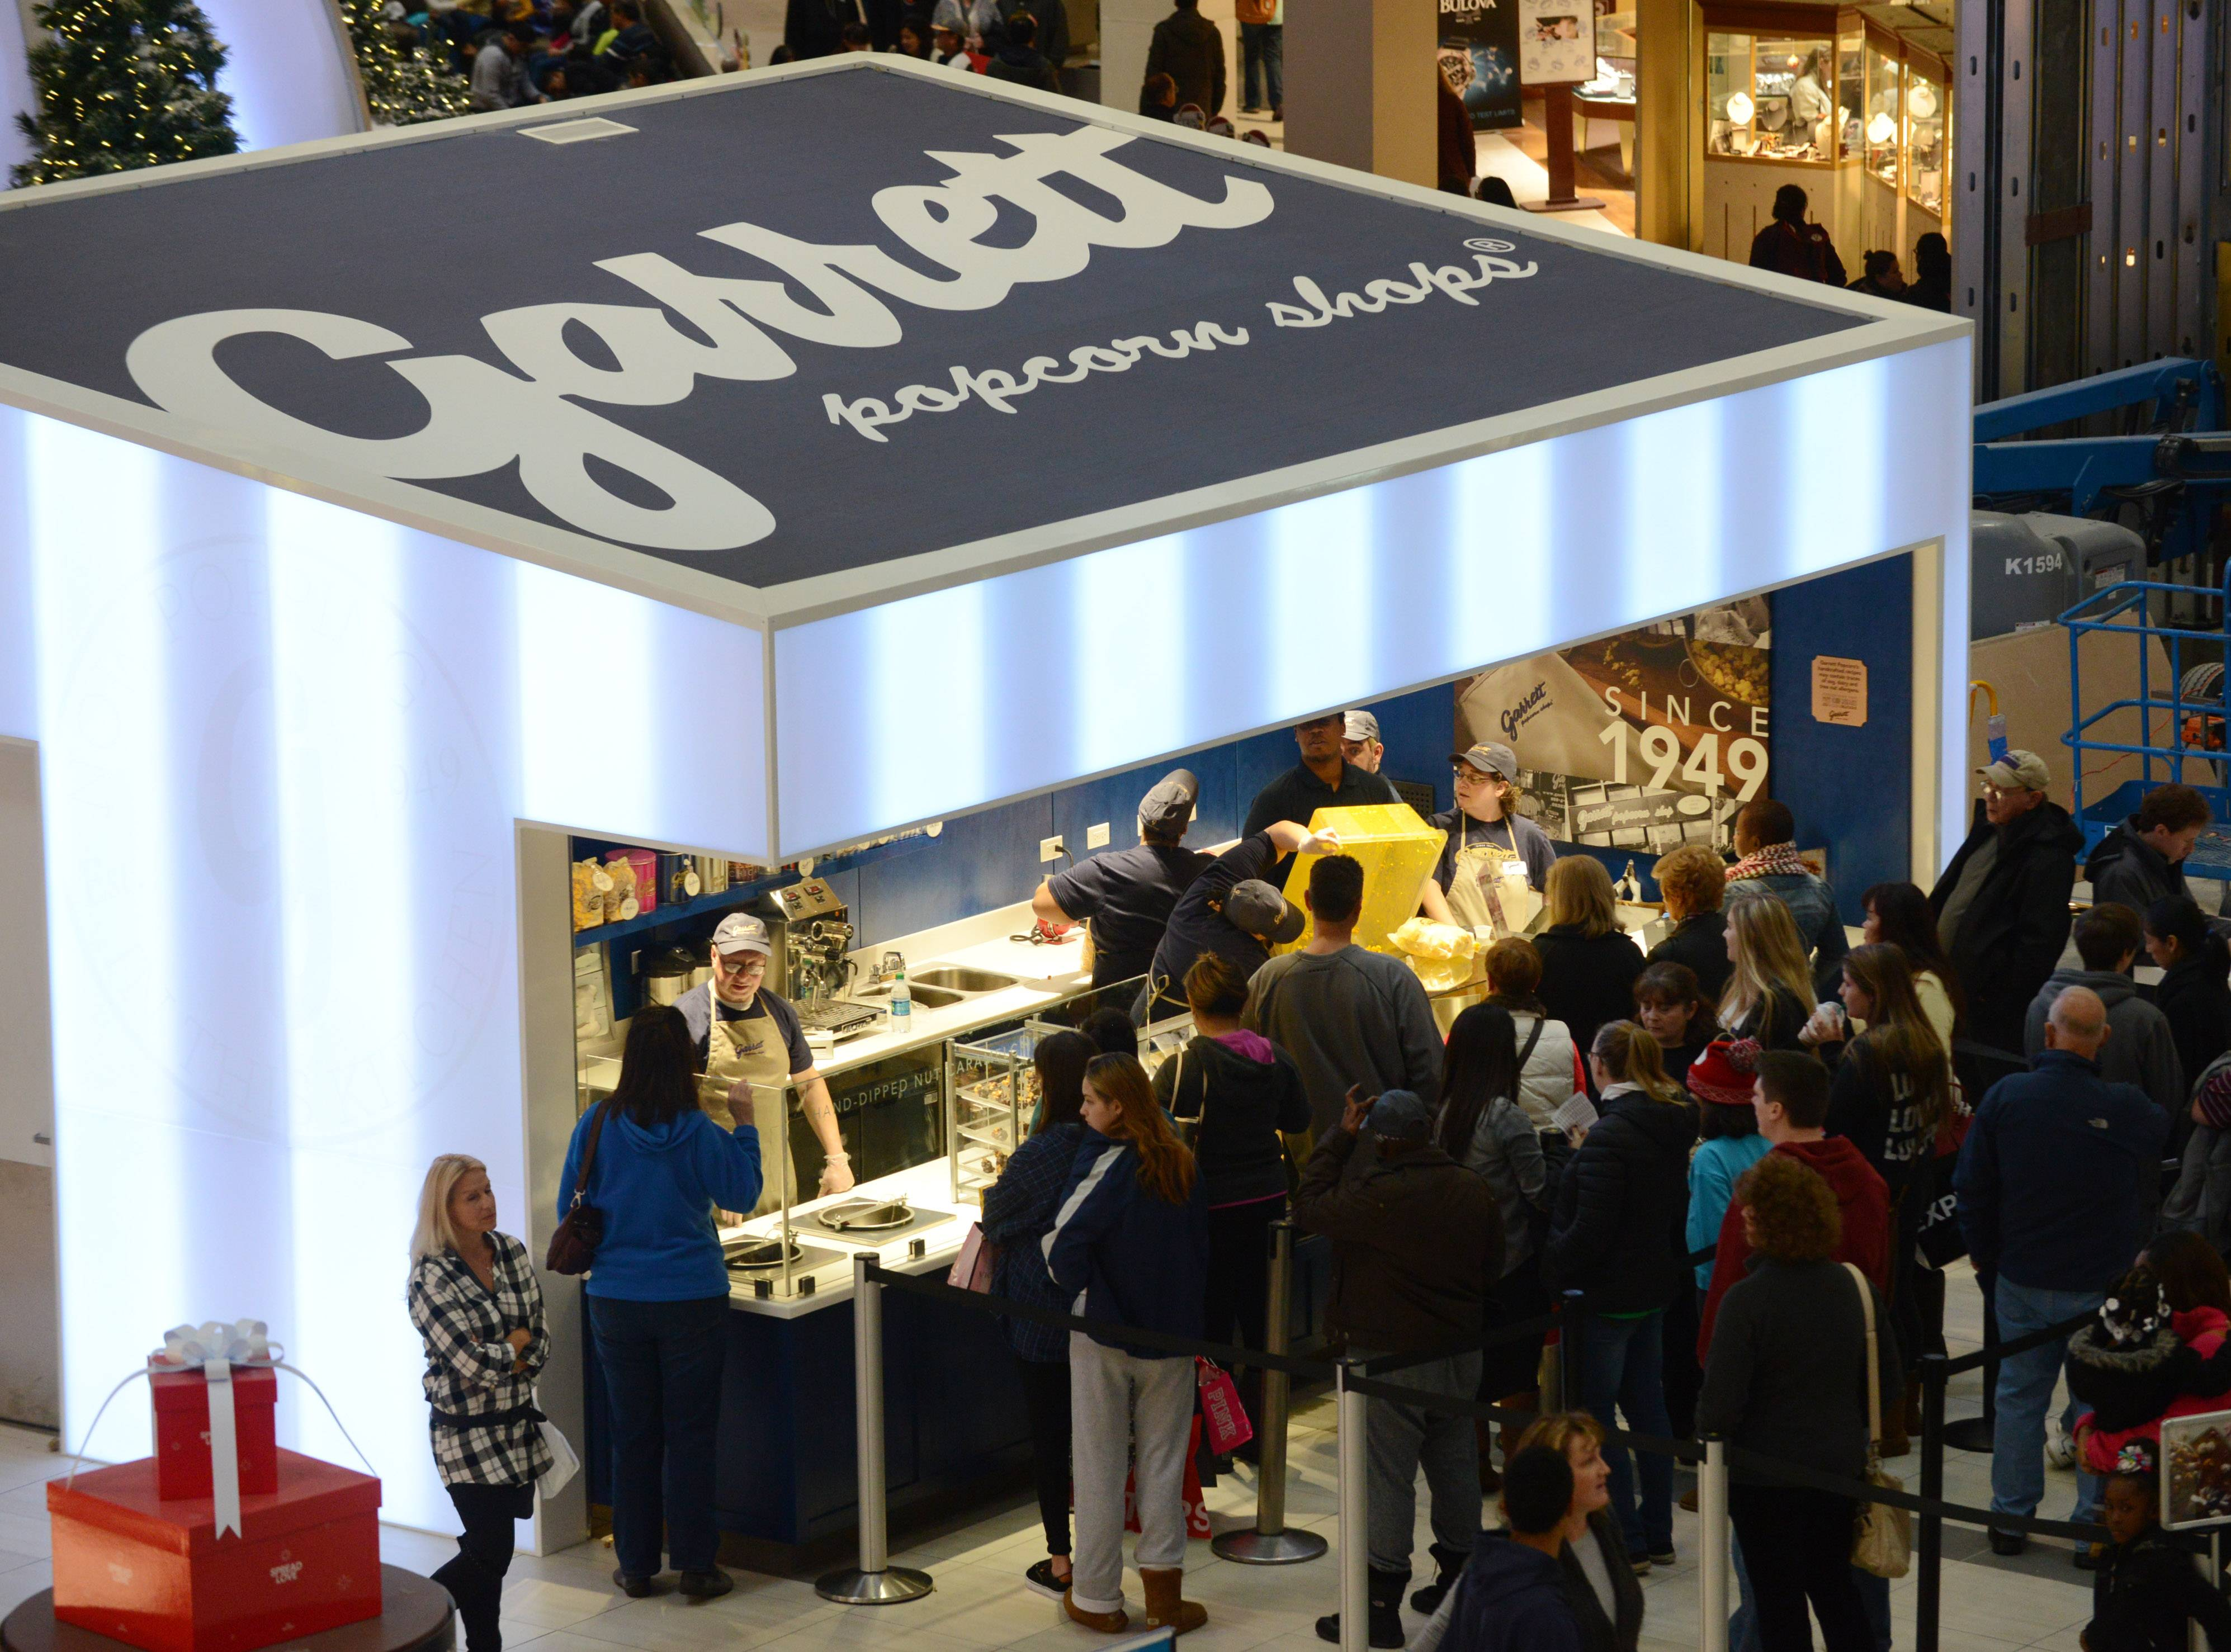 Garrett Popcorn Shops opened its first suburban location in the Grand Court of Schaumburg's Woodfield Mall Friday morning.